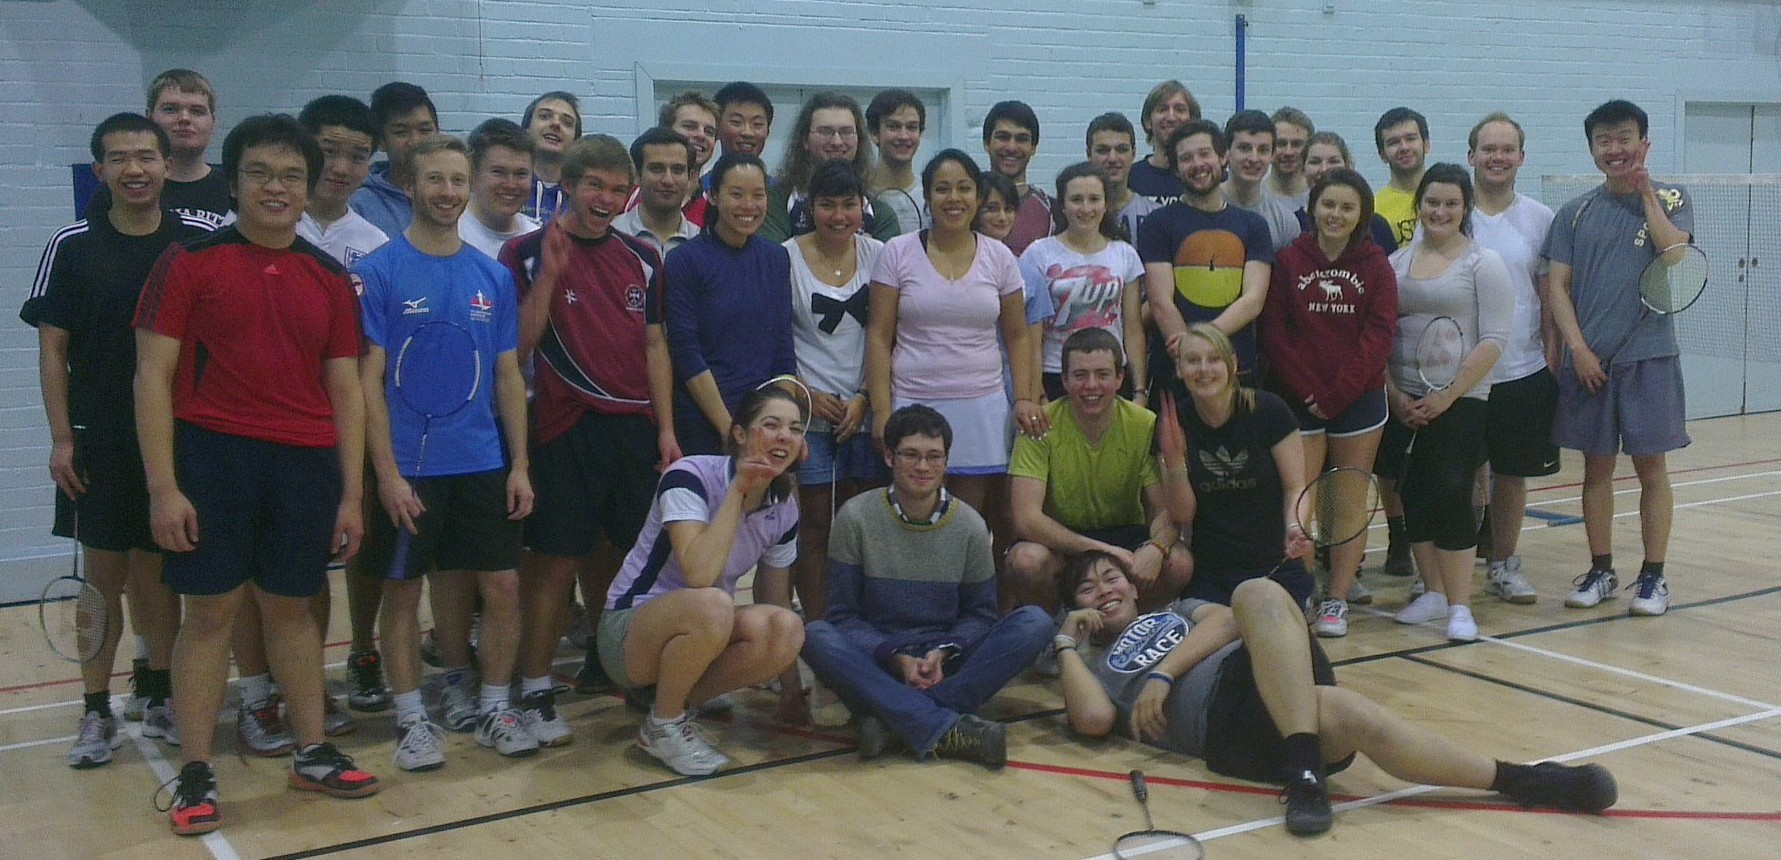 Edinburgh University Badminton Club